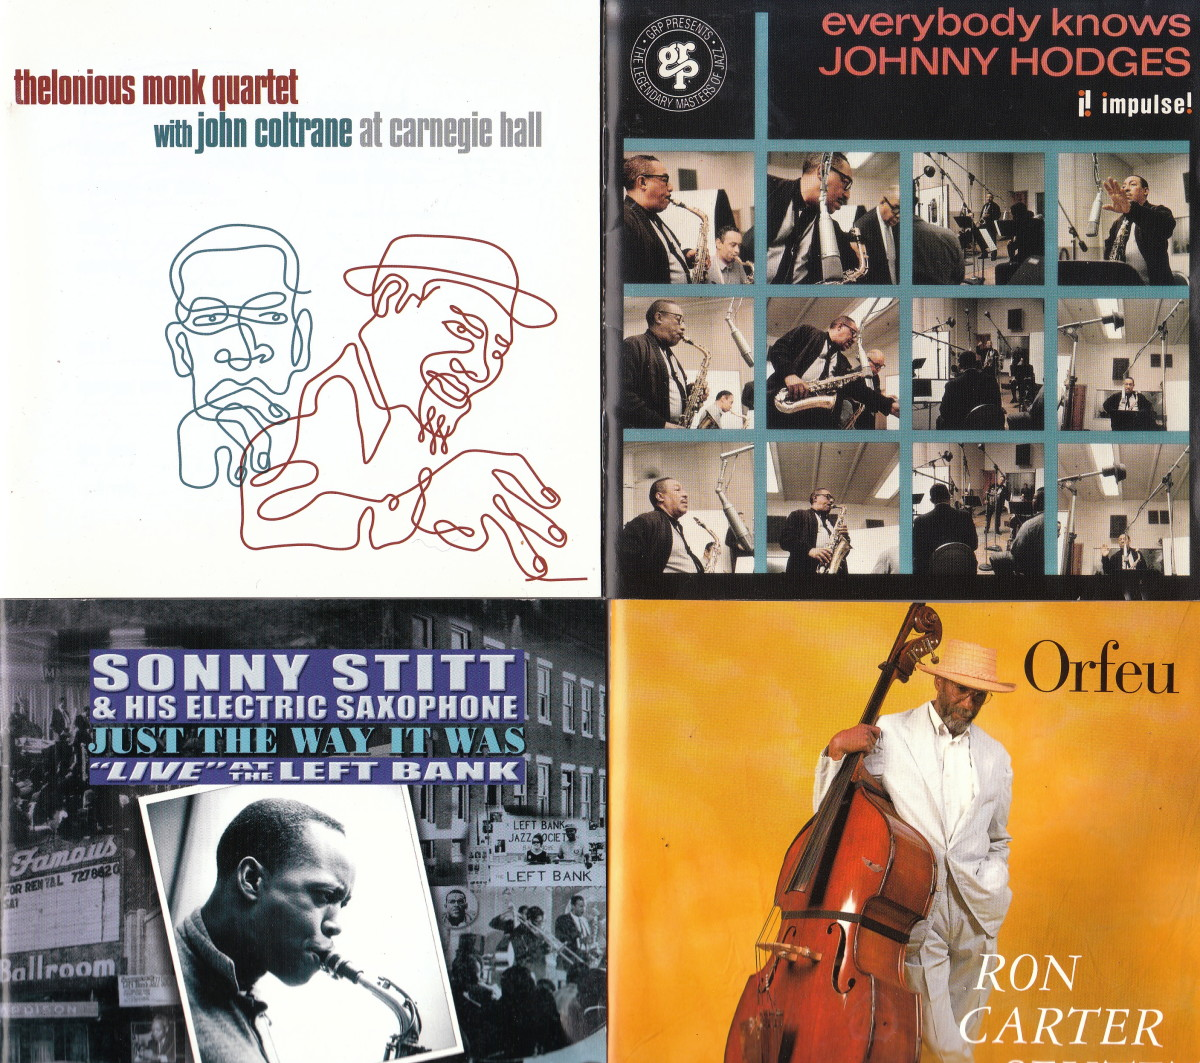 Left to Right: Thelonious Monk; Johnny Hodges; Sonny Stitt; Ron Carter